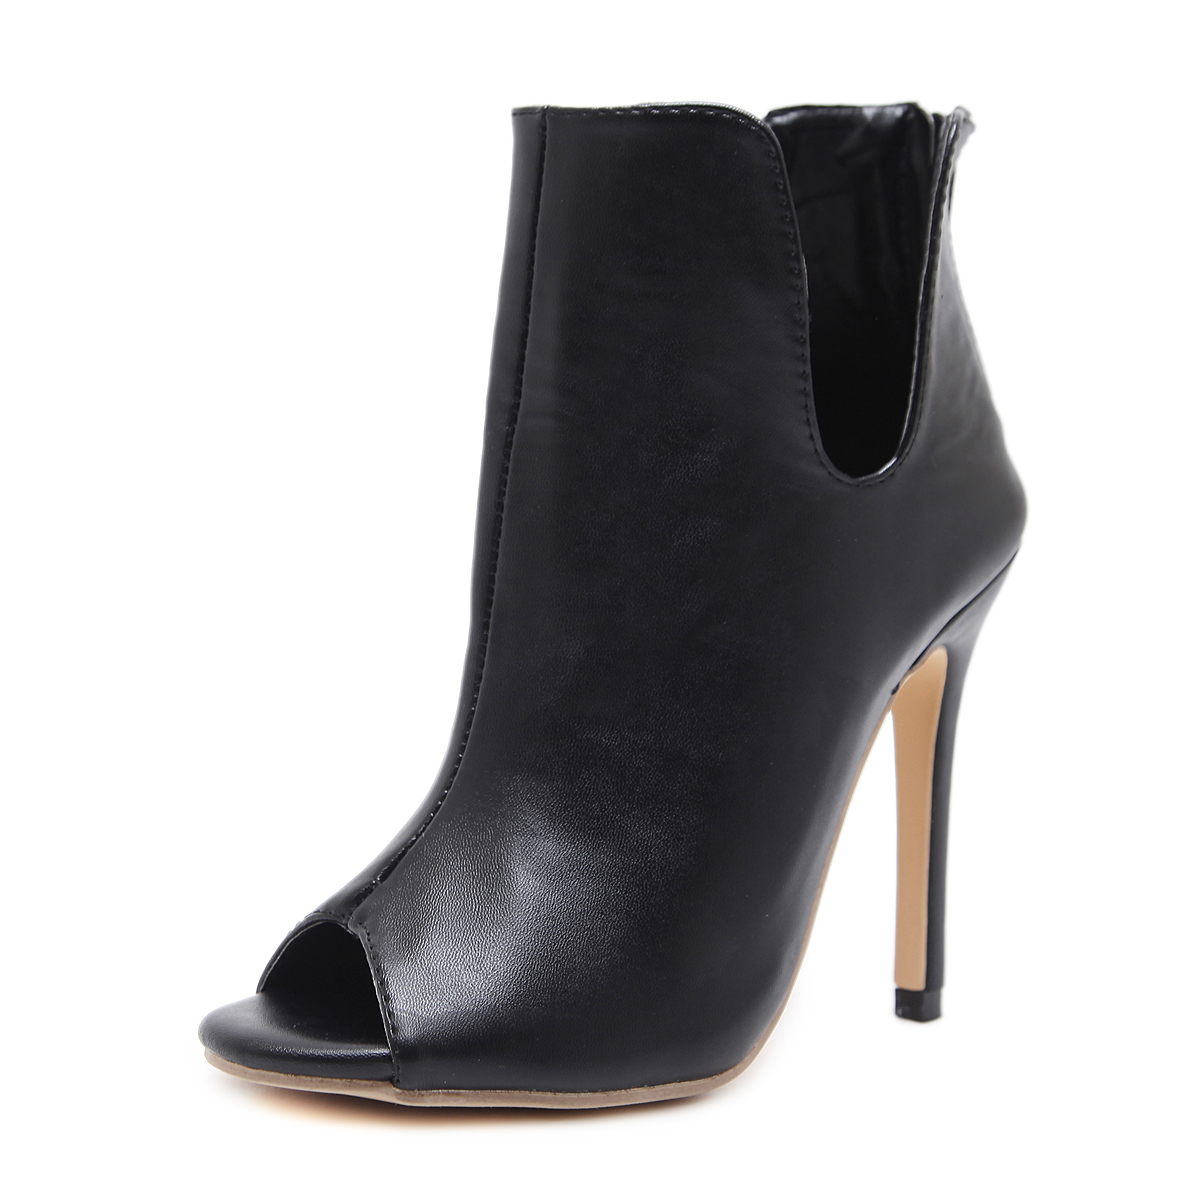 Italian style peep-toe high-heeled boots's main photo